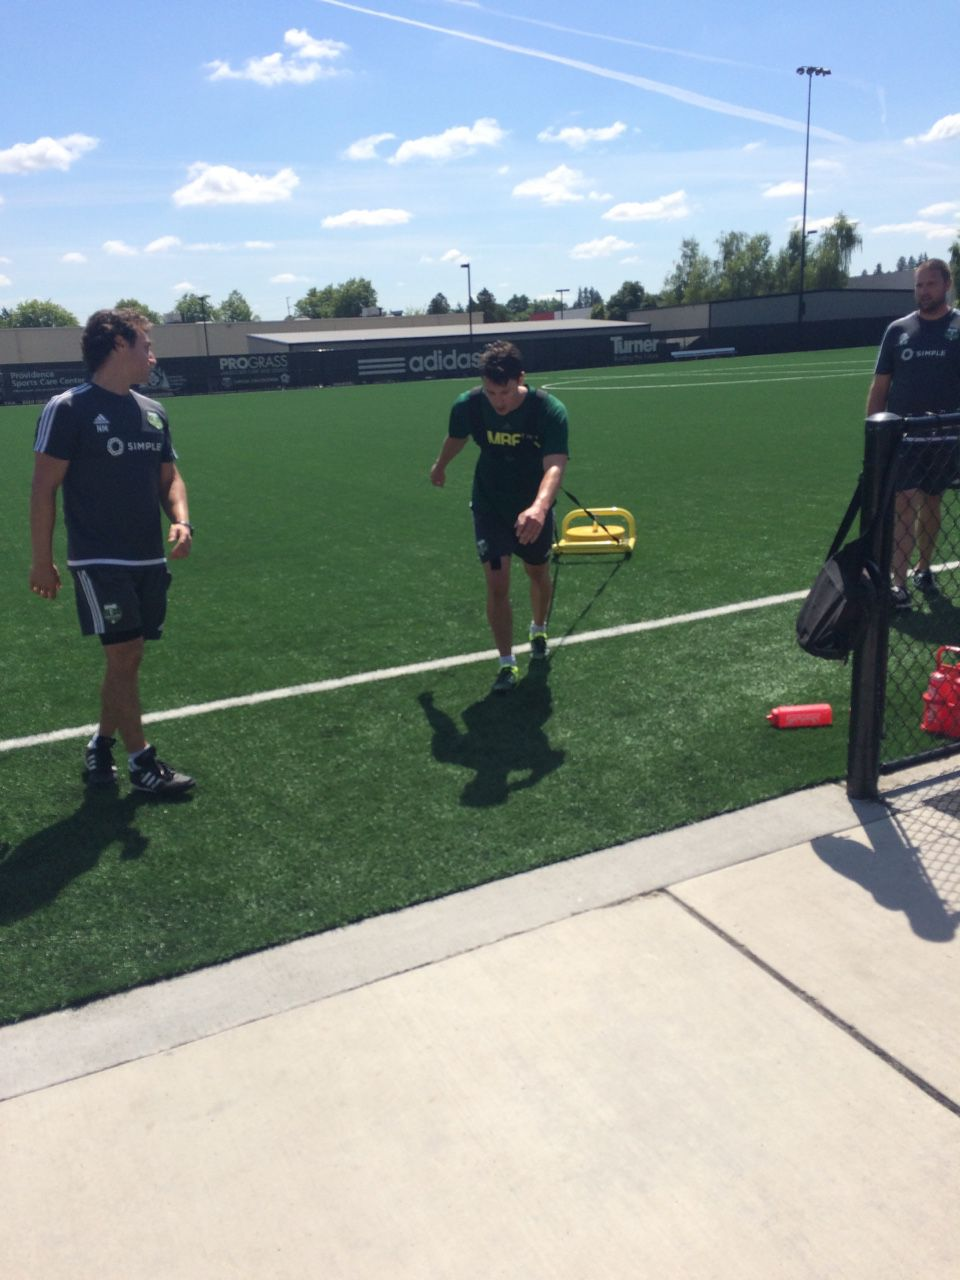 Ben Zemanski pulls a weight sled at Portland Timbers practice. Will Conwell. 7/15/15